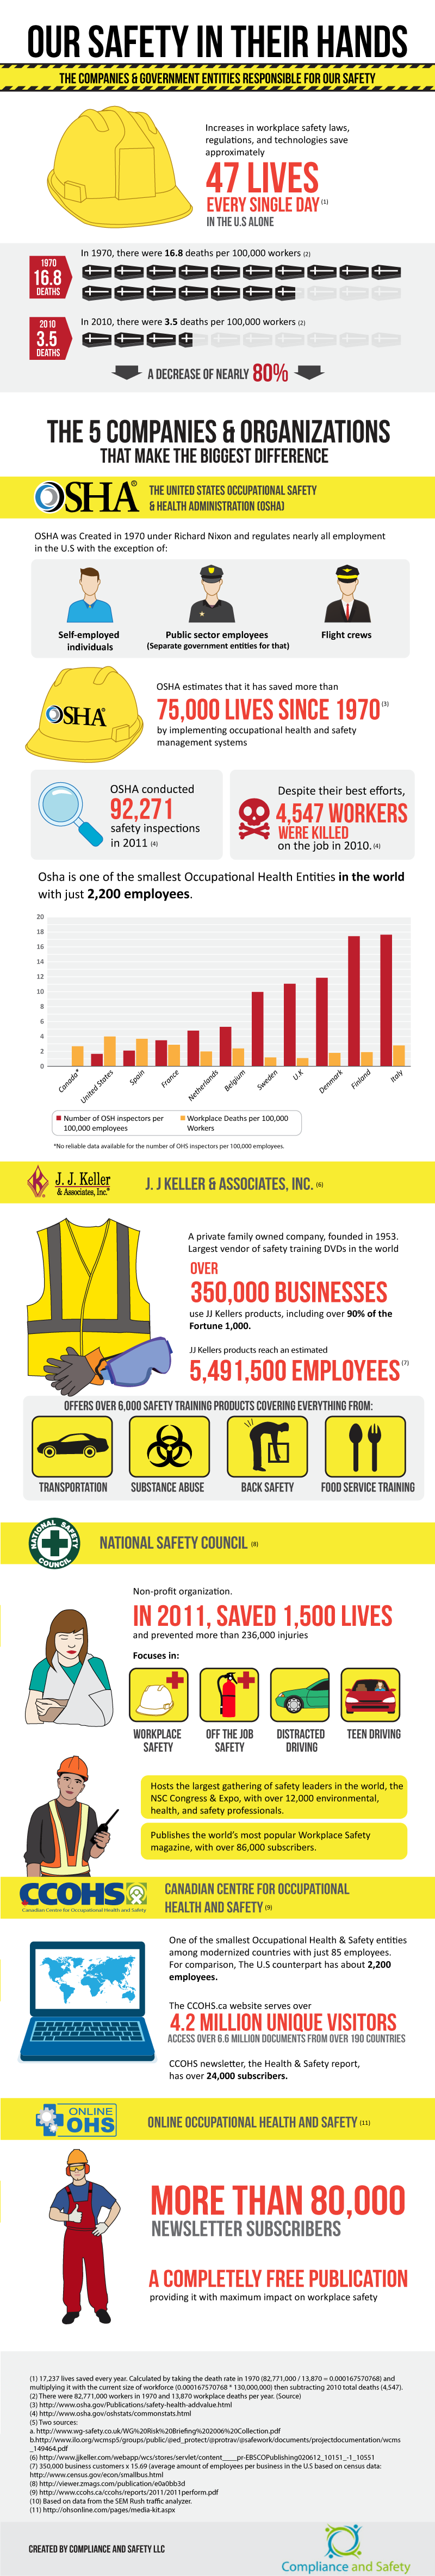 Safety Infographic Our Safety in Their Hands Workplace